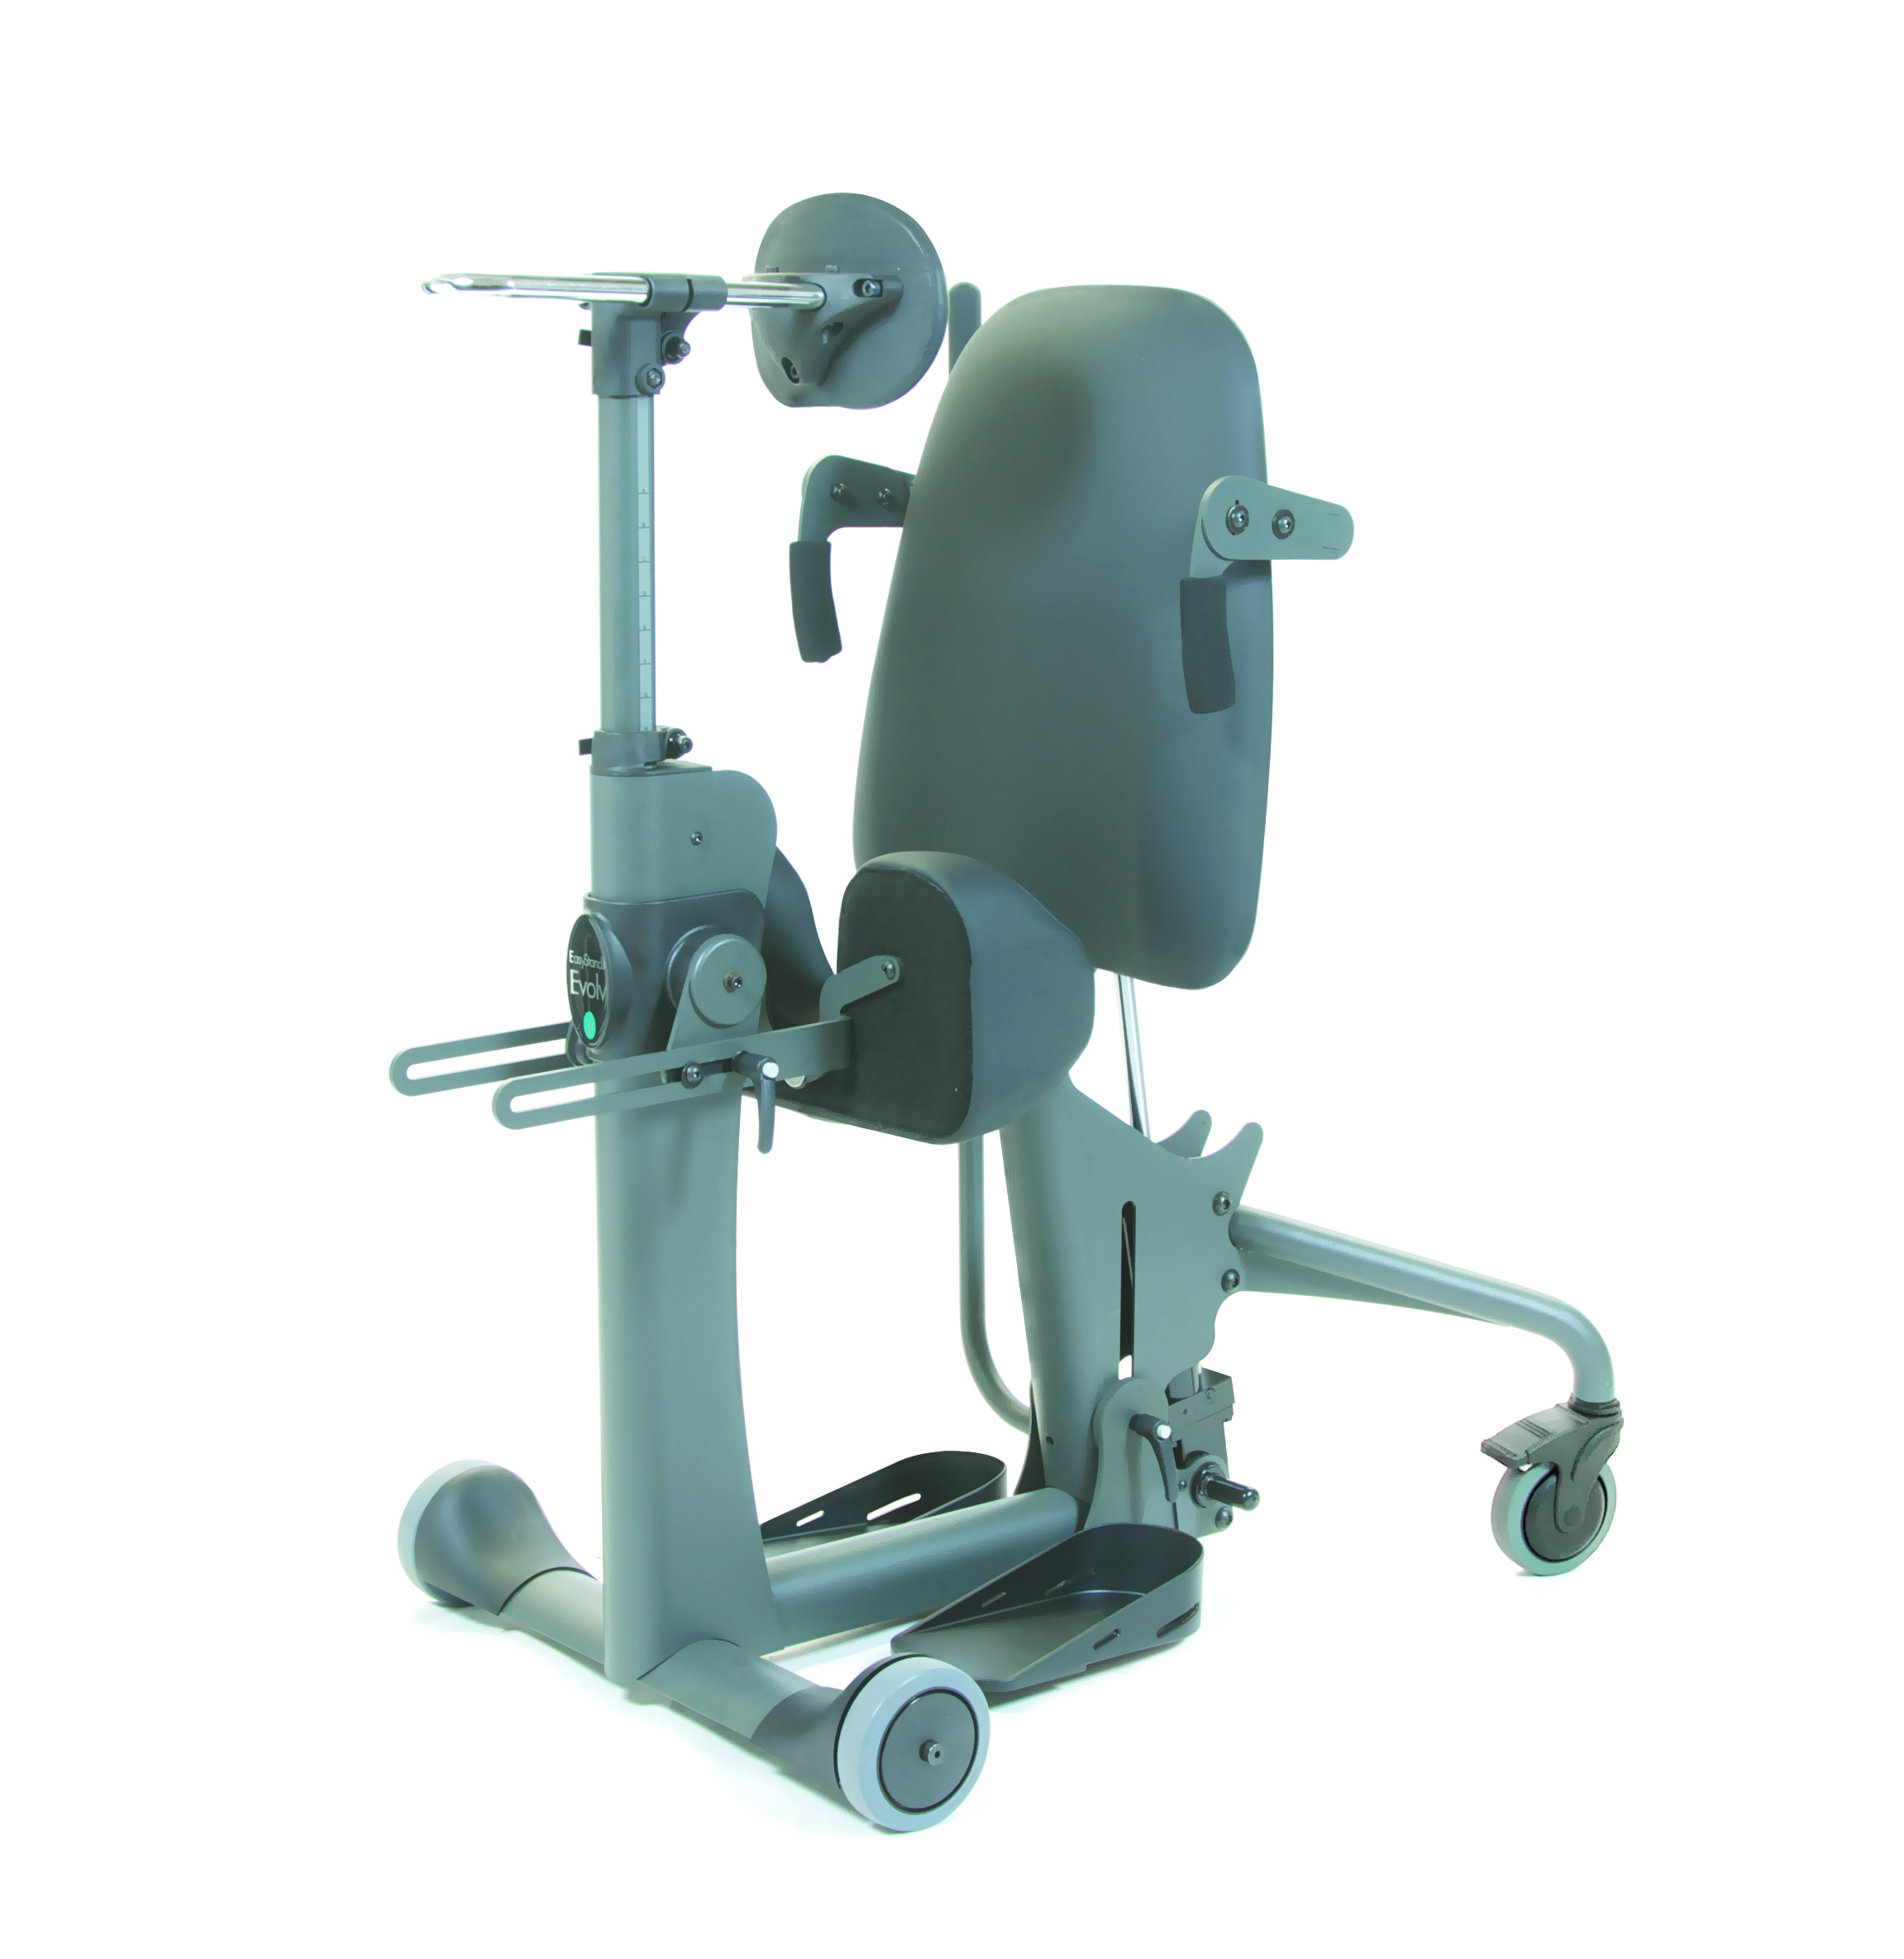 Home physical therapy equipment - Easystand Evolv E3 Standing Frame